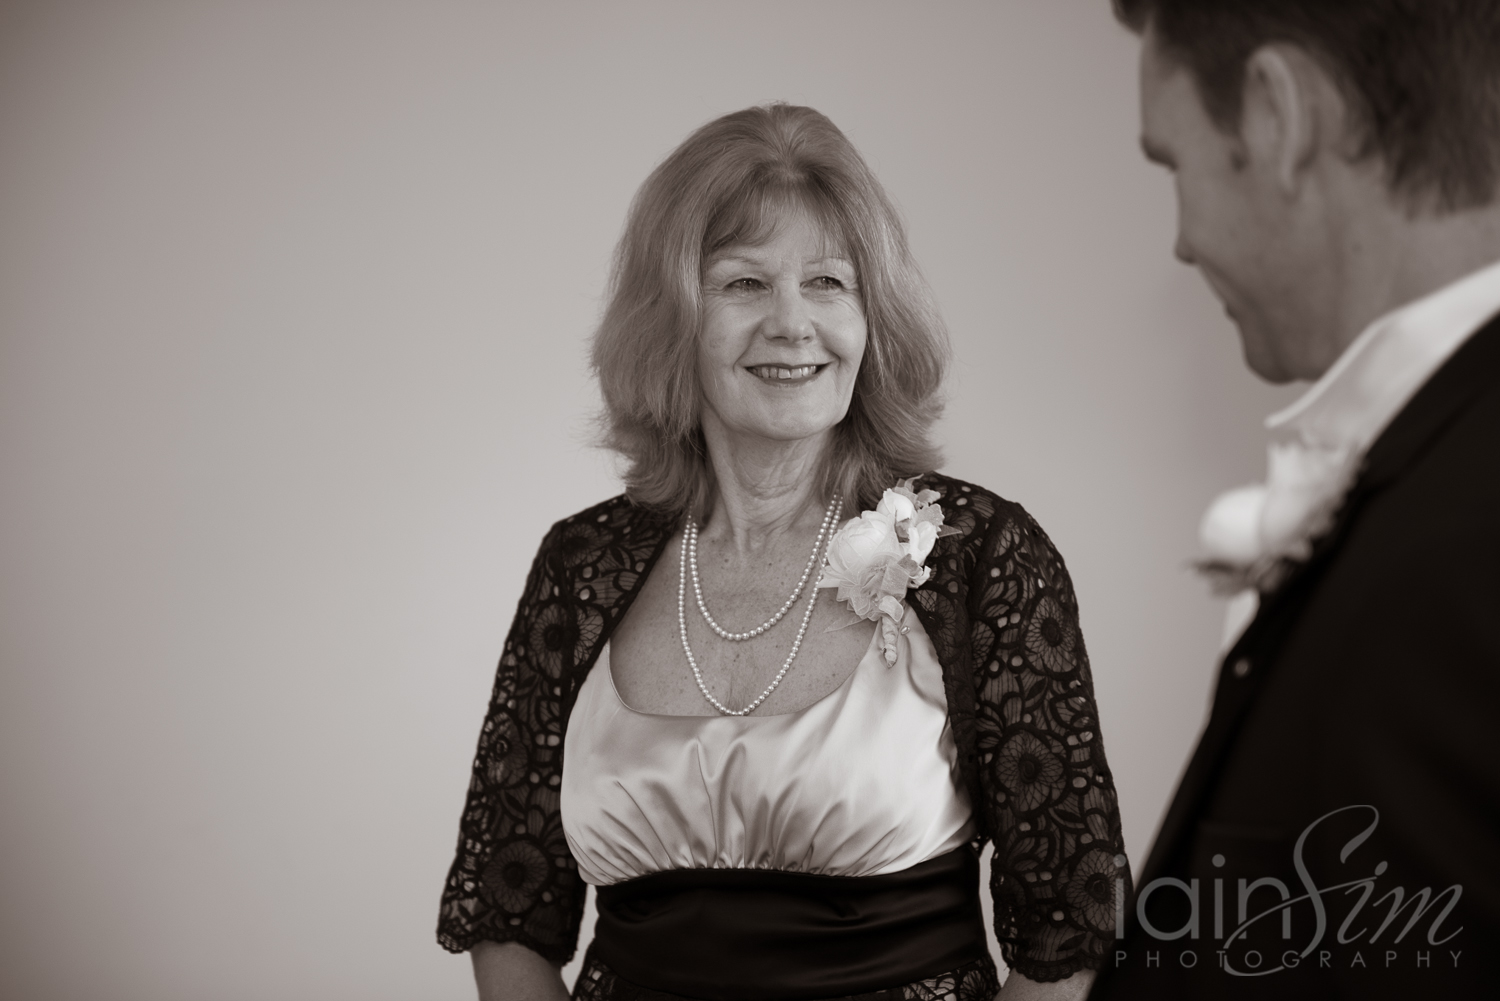 wpid-Katherine-and-Marks-RipponLea-Wedding-by-Iain-Sim-Photography_004.jpg